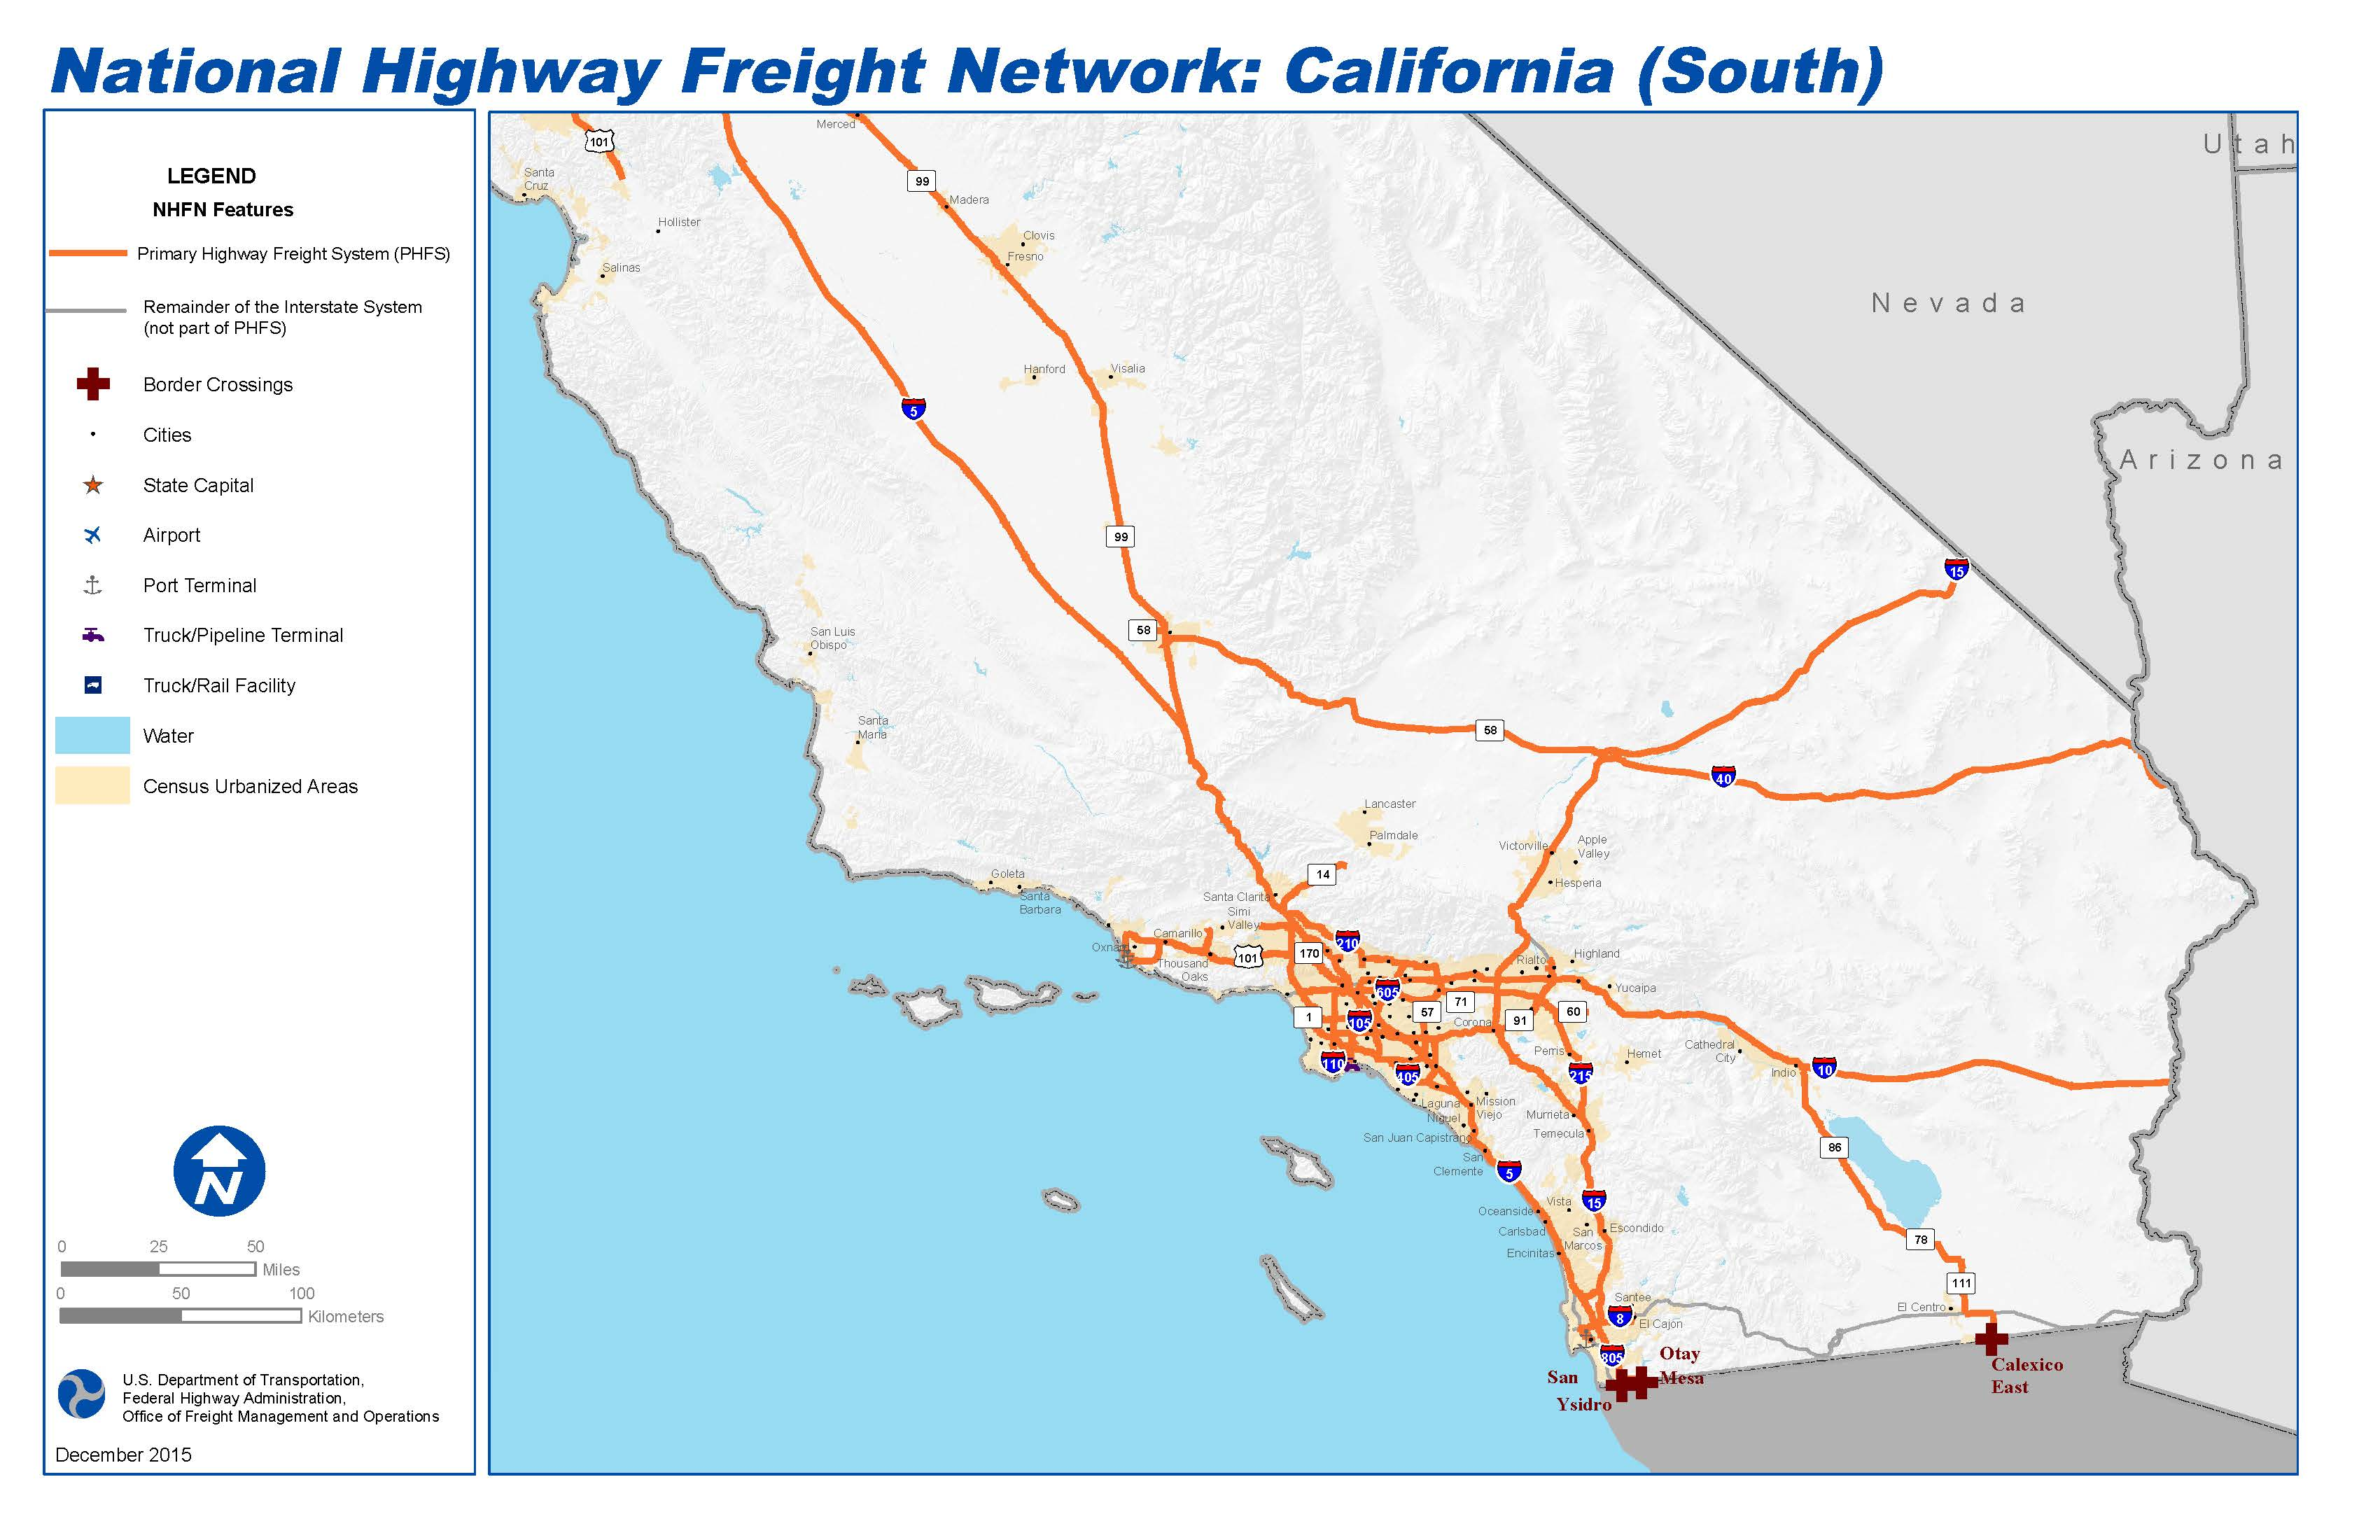 Highway 101 California Map.National Highway Freight Network Map And Tables For California